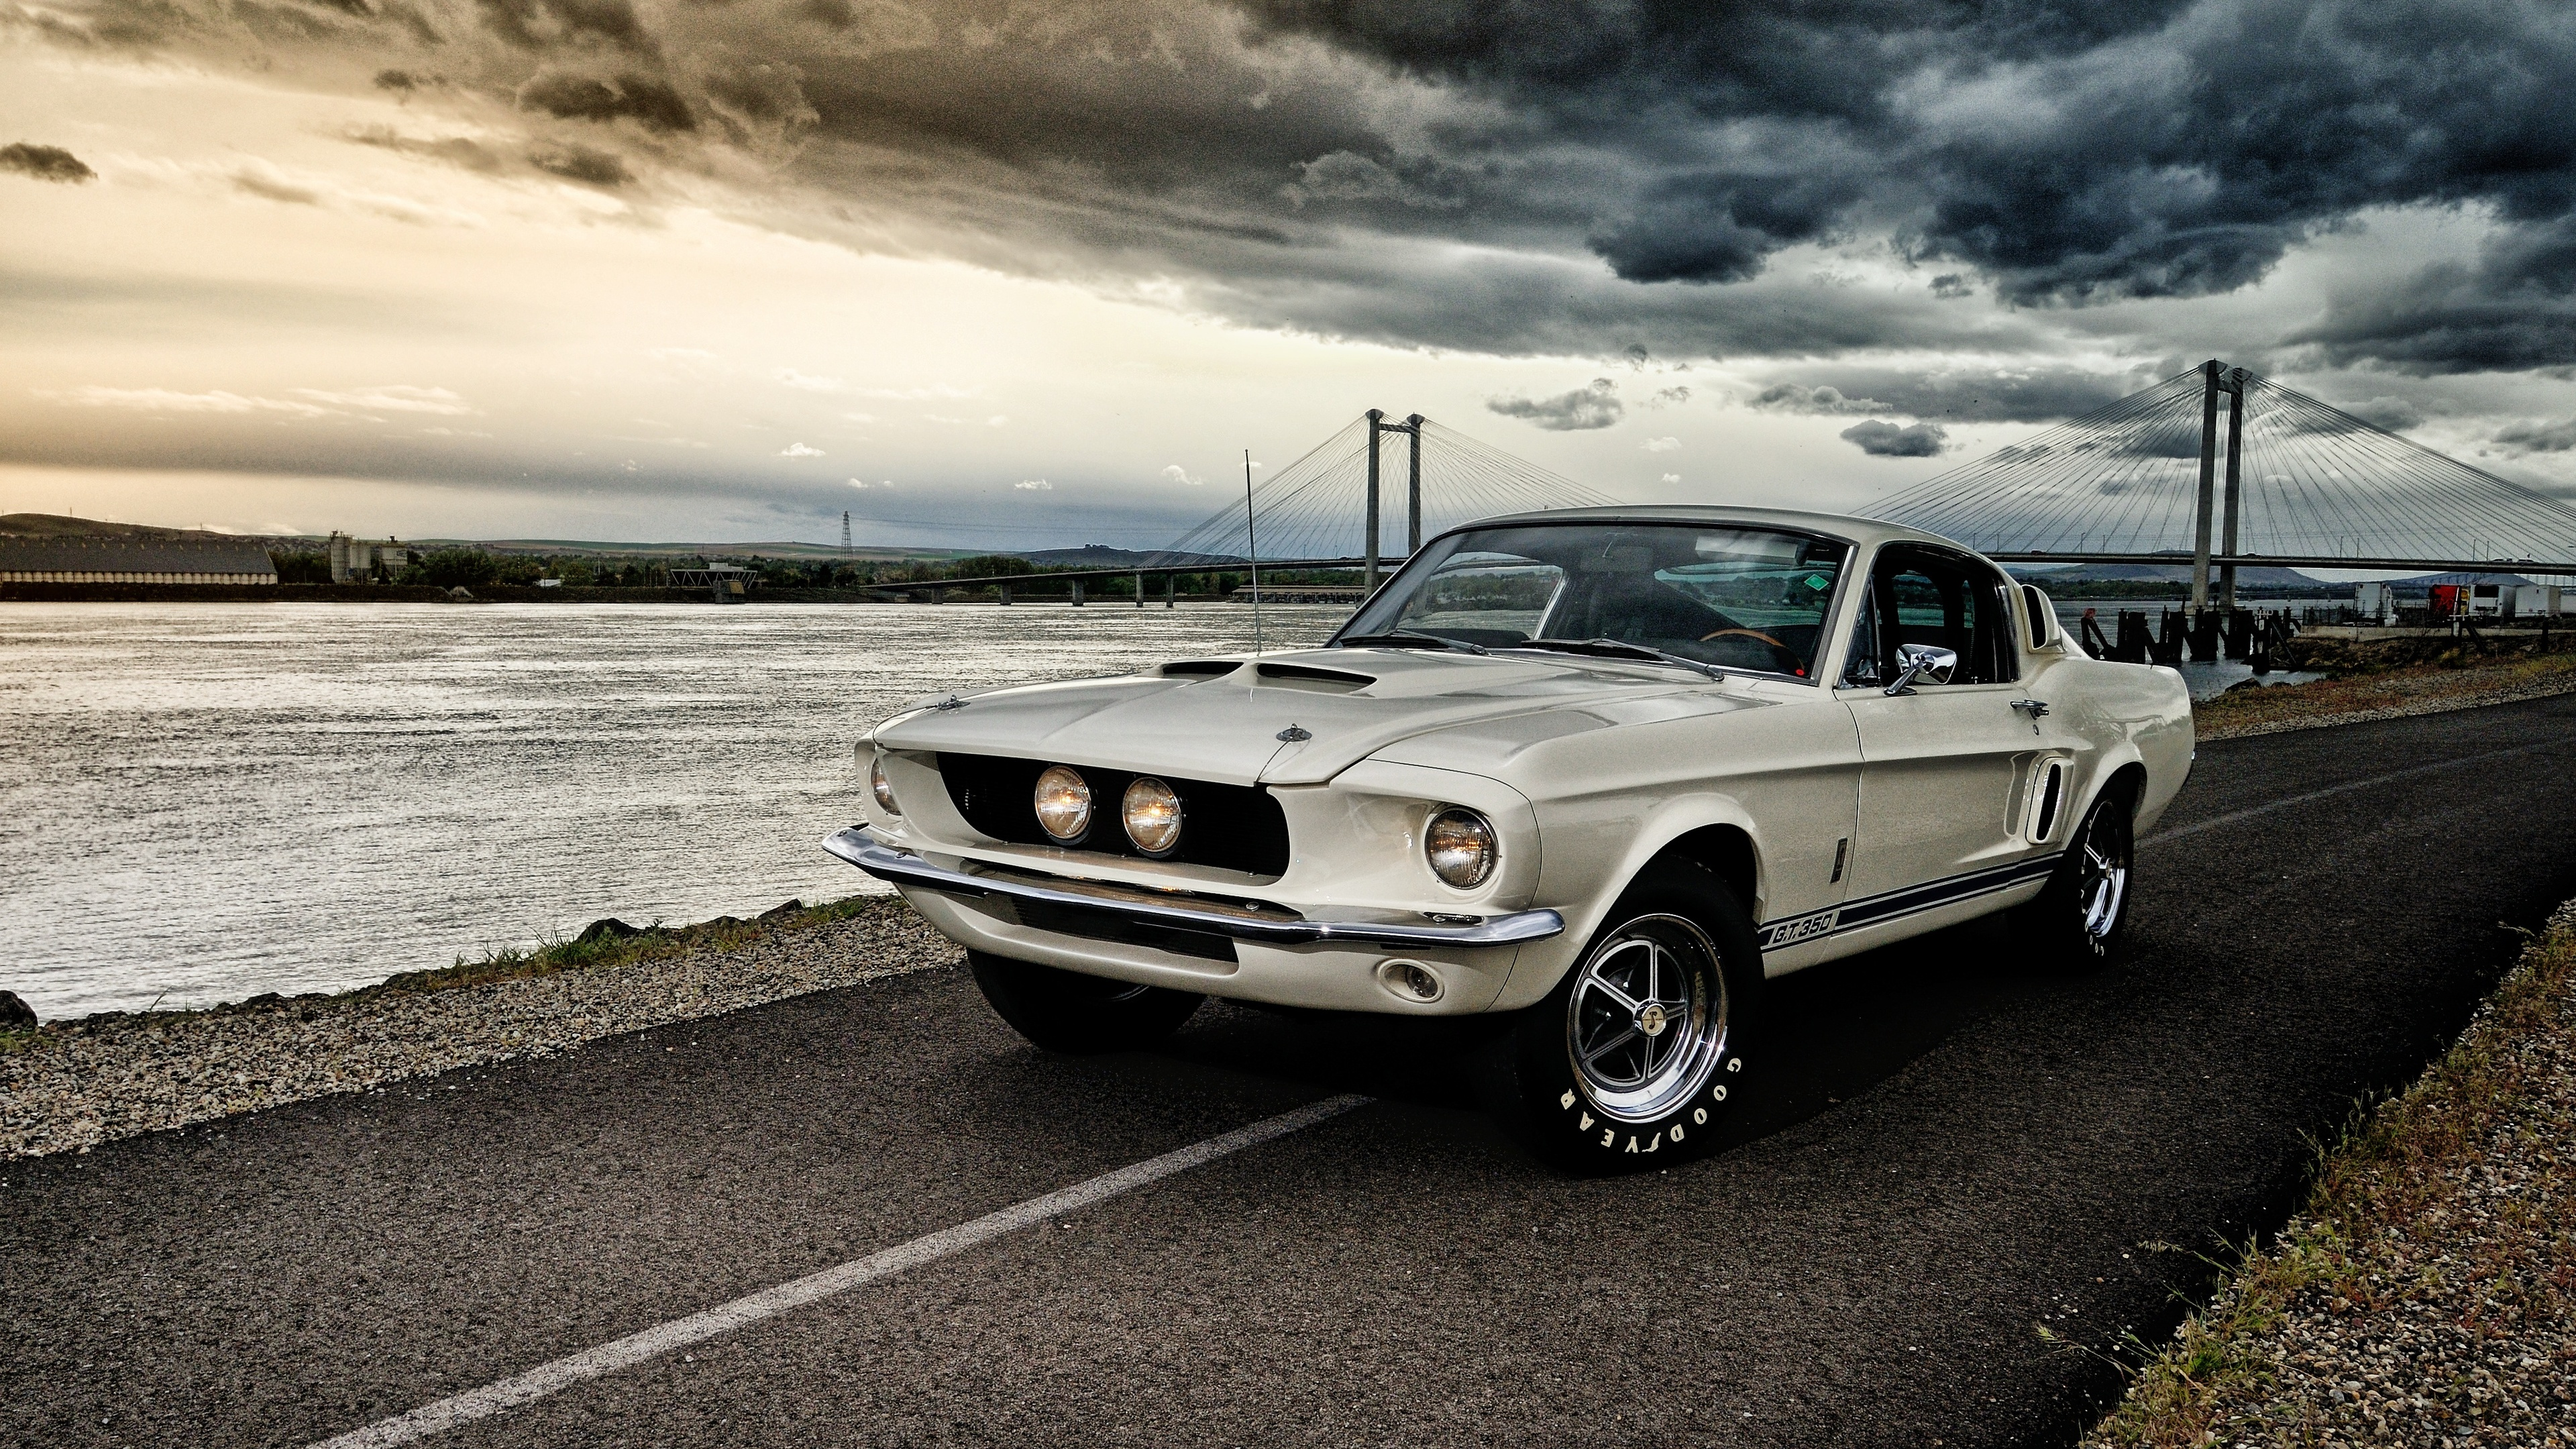 ford mustang gt350 4k 1539110566 - Ford Mustang GT350 4k - hd-wallpapers, ford wallpapers, ford mustang wallpapers, cars wallpapers, 4k-wallpapers